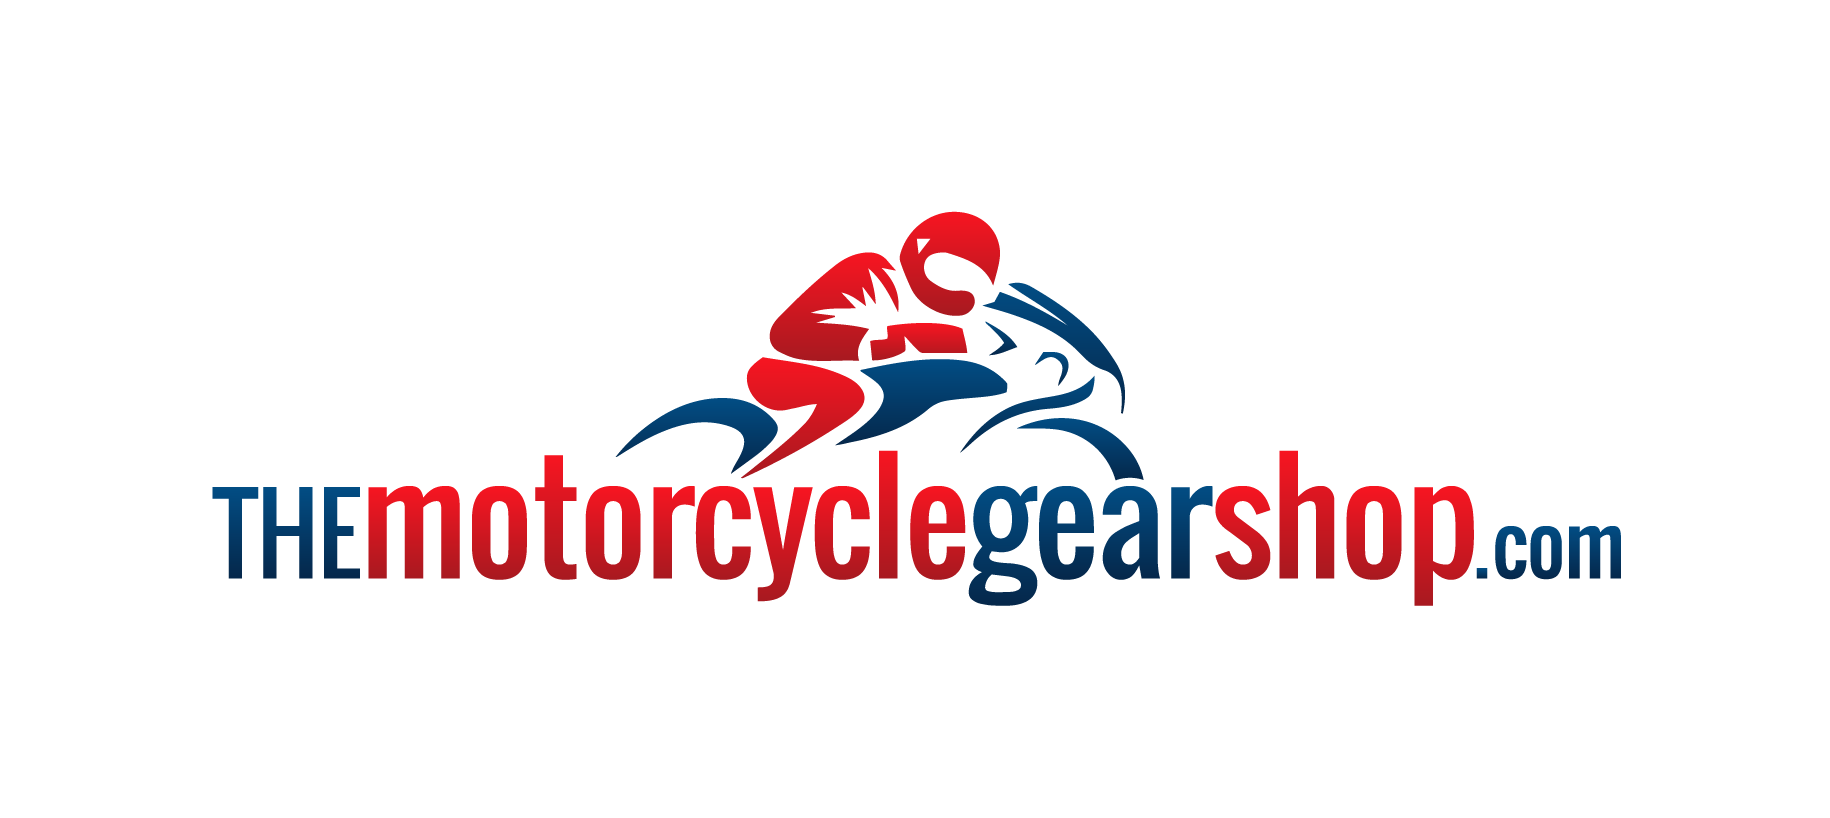 TheMotorCycleGearShop.com